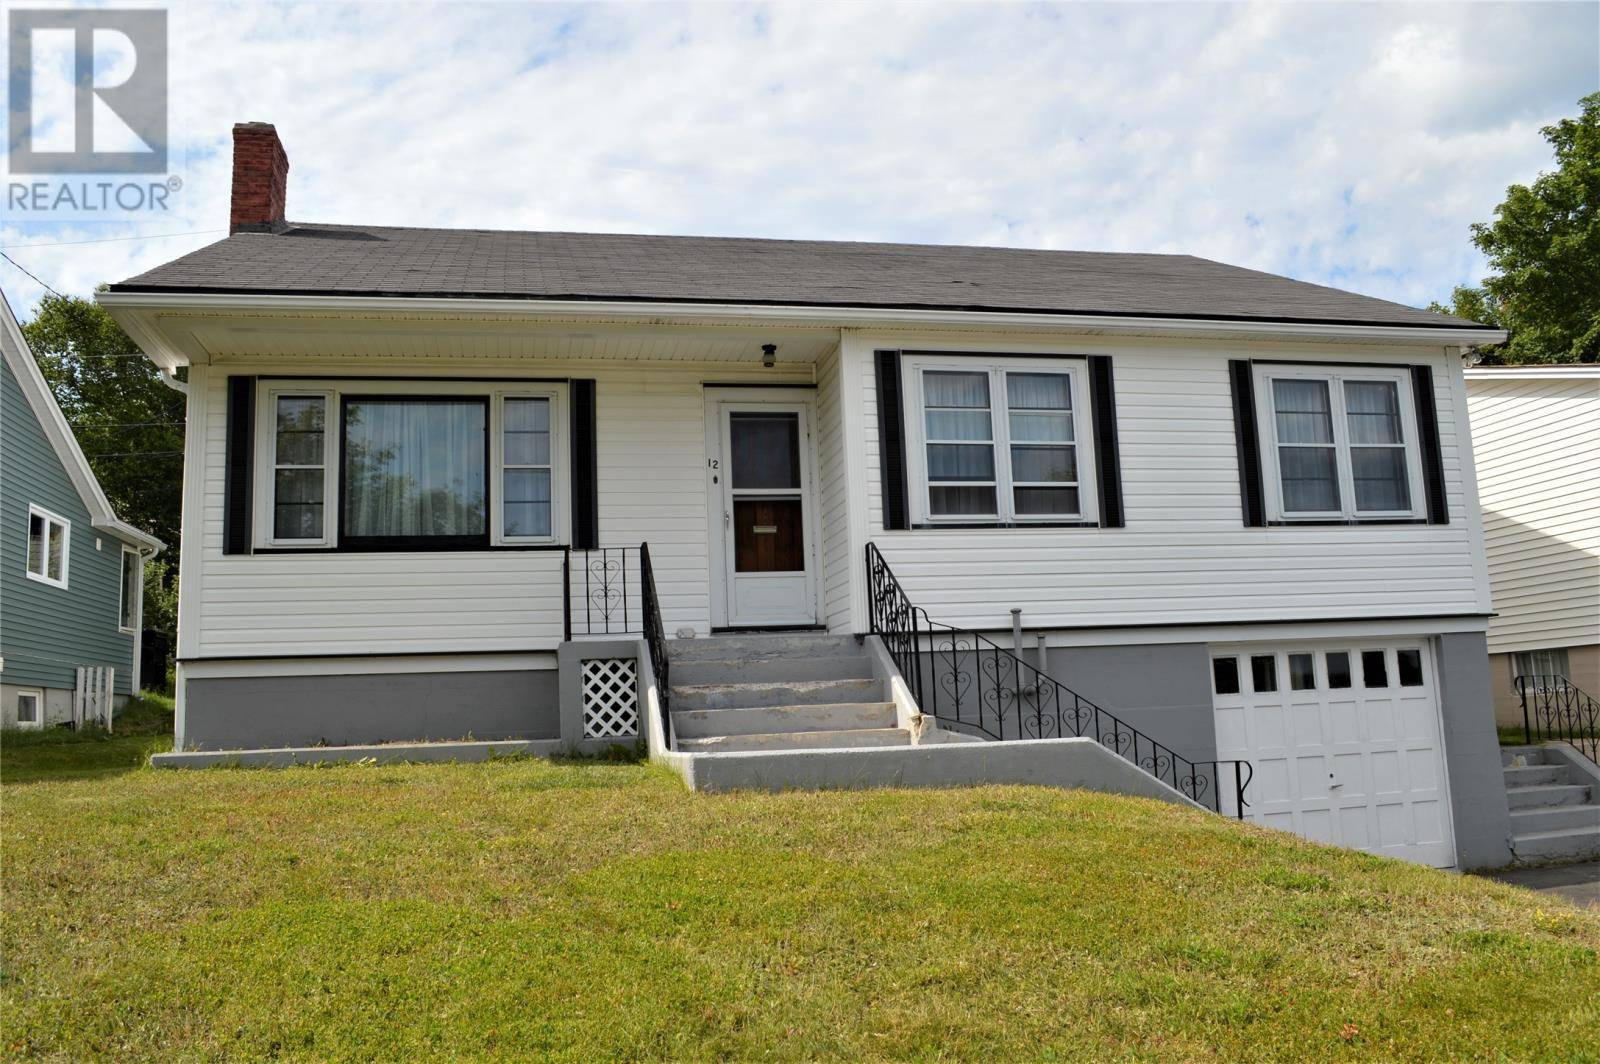 House for sale at 12 Byron St St. John's Newfoundland - MLS: 1200131